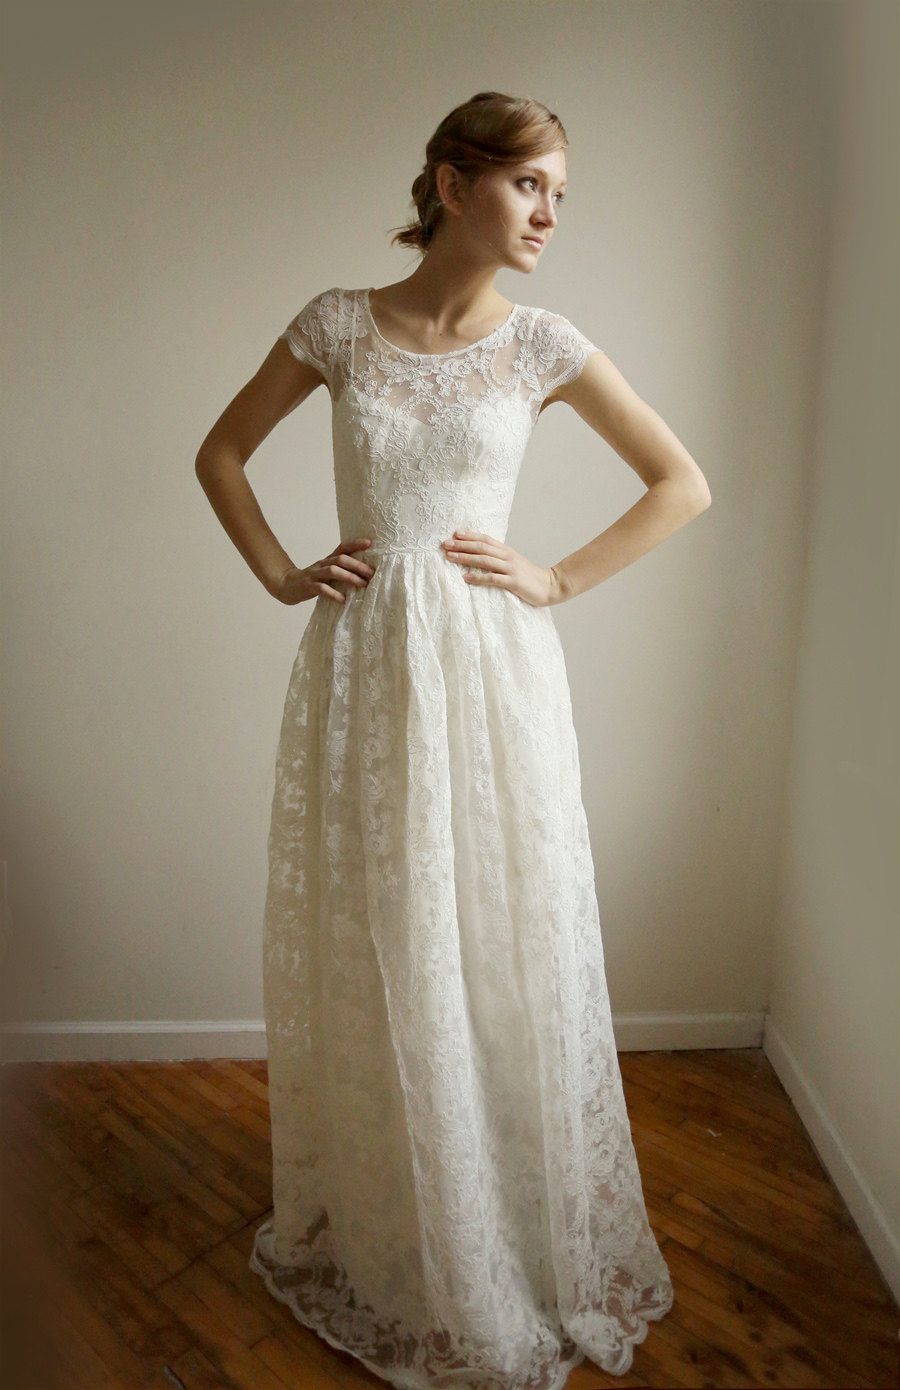 sk fashion talk cotton wedding dresses glad and surprised With cotton wedding dress